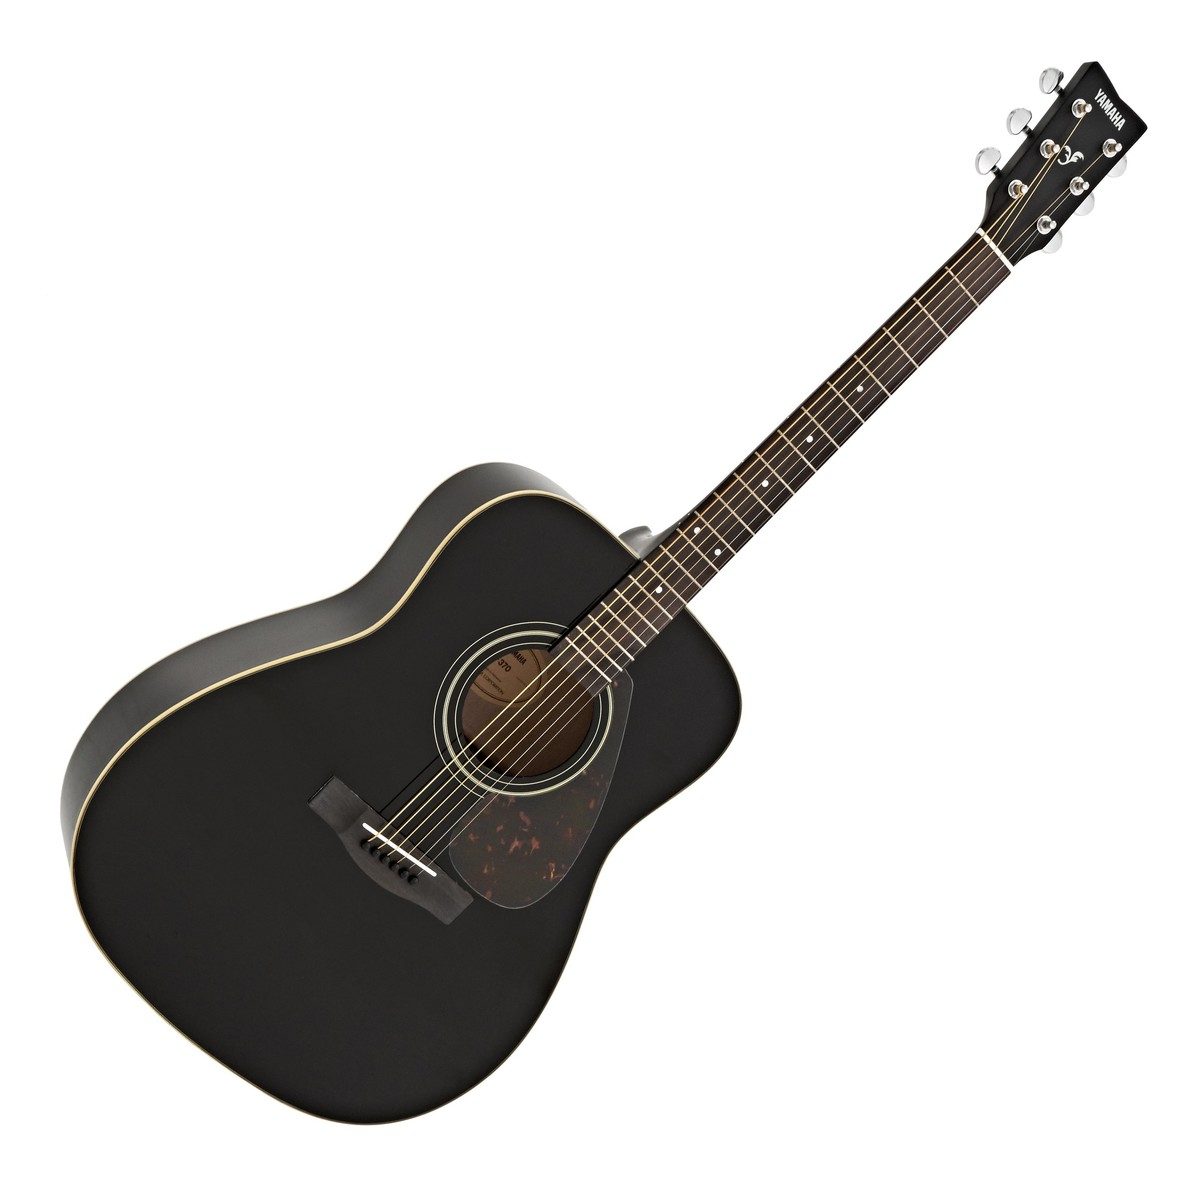 Yamaha f370 acoustic guitar black at for Yamaha classic guitar